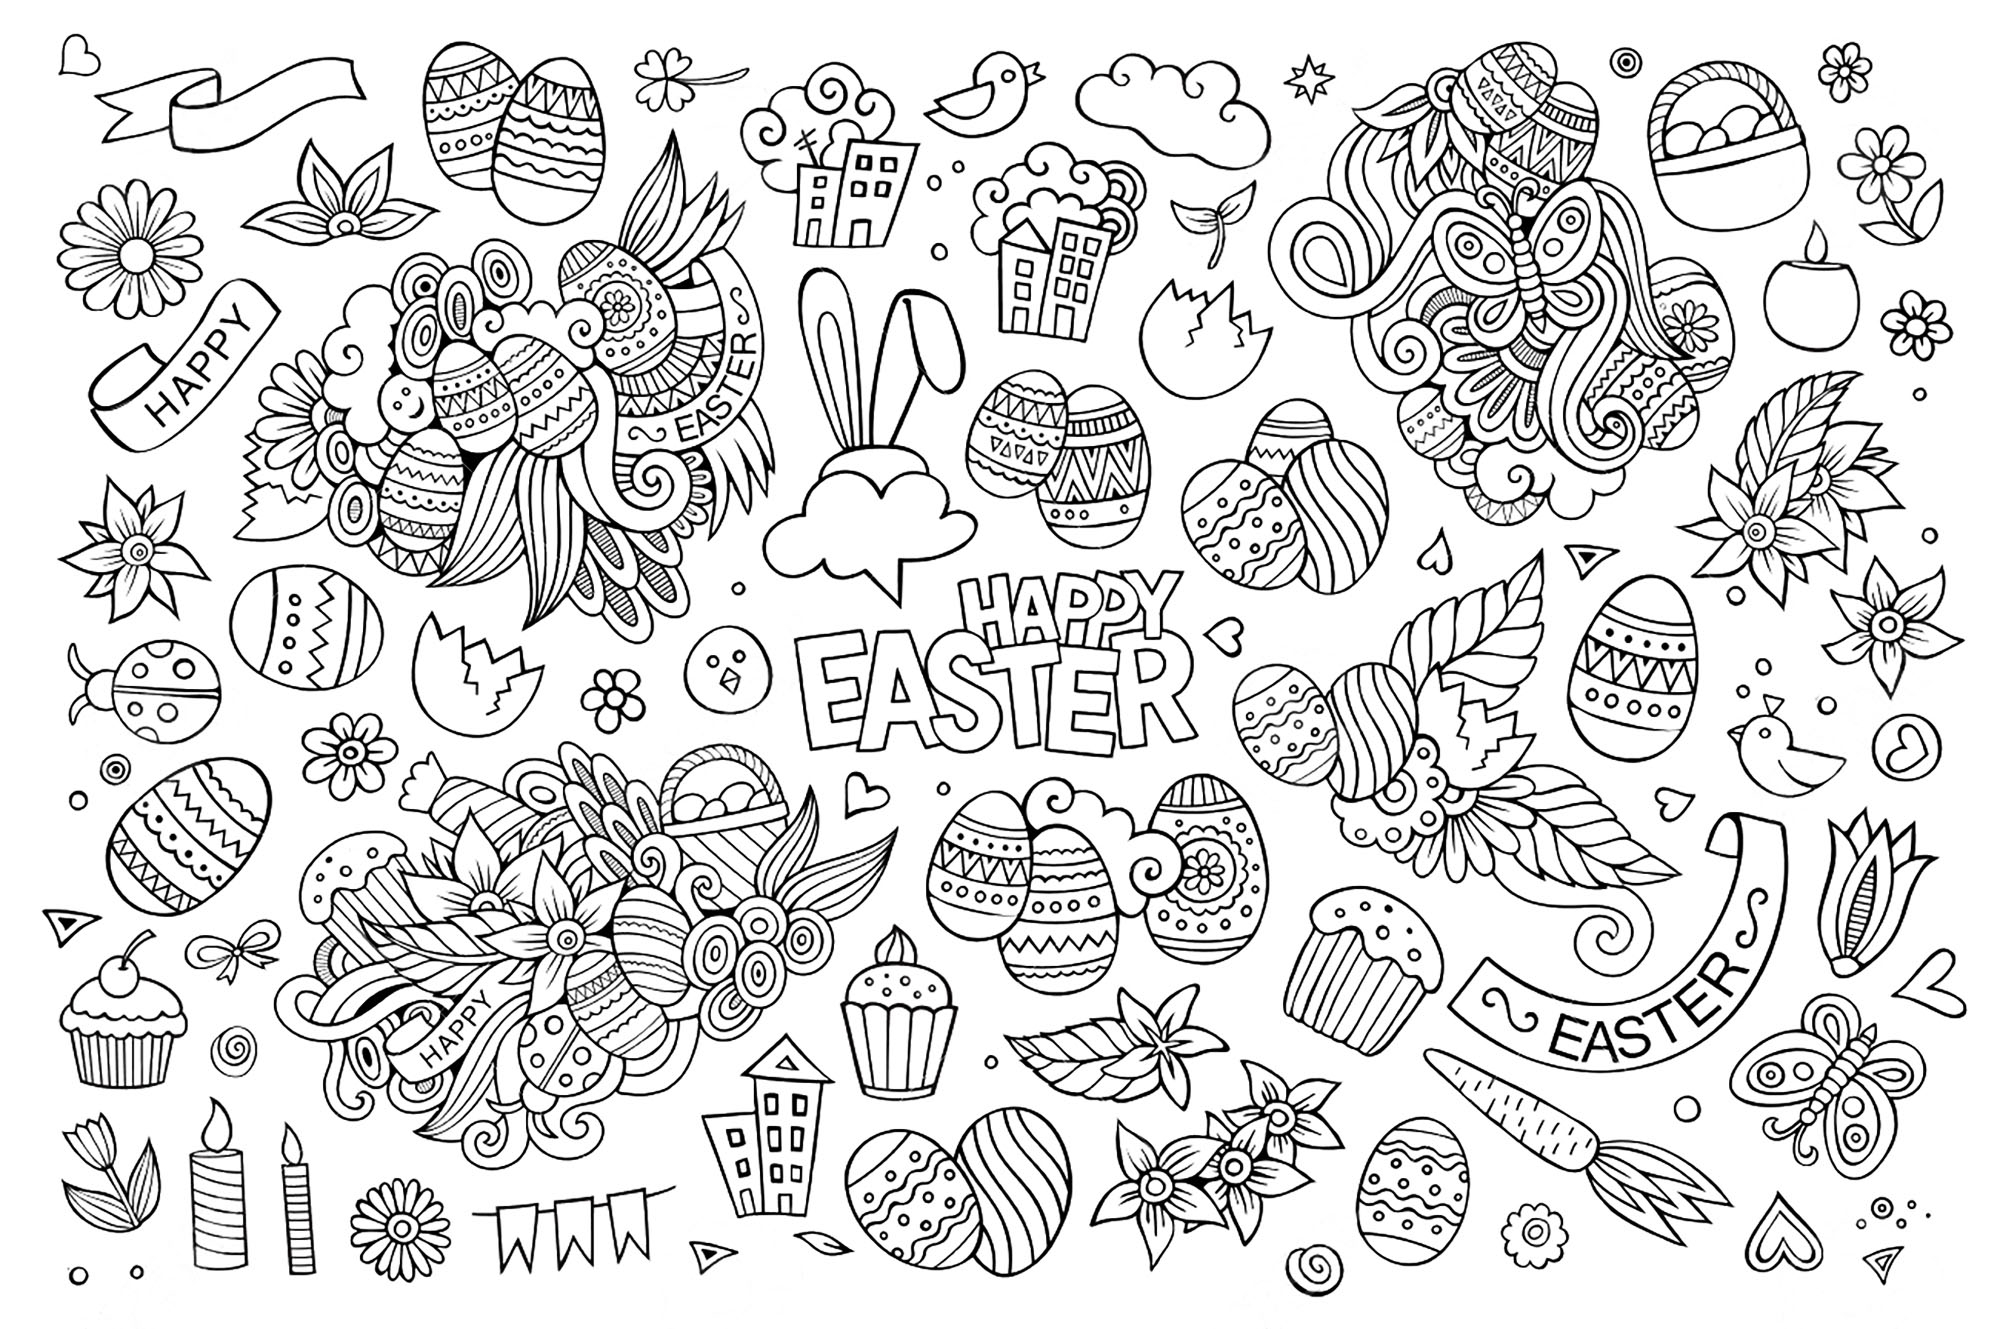 Doodle Art Coloring Pages  to Print 12q - To print for your project